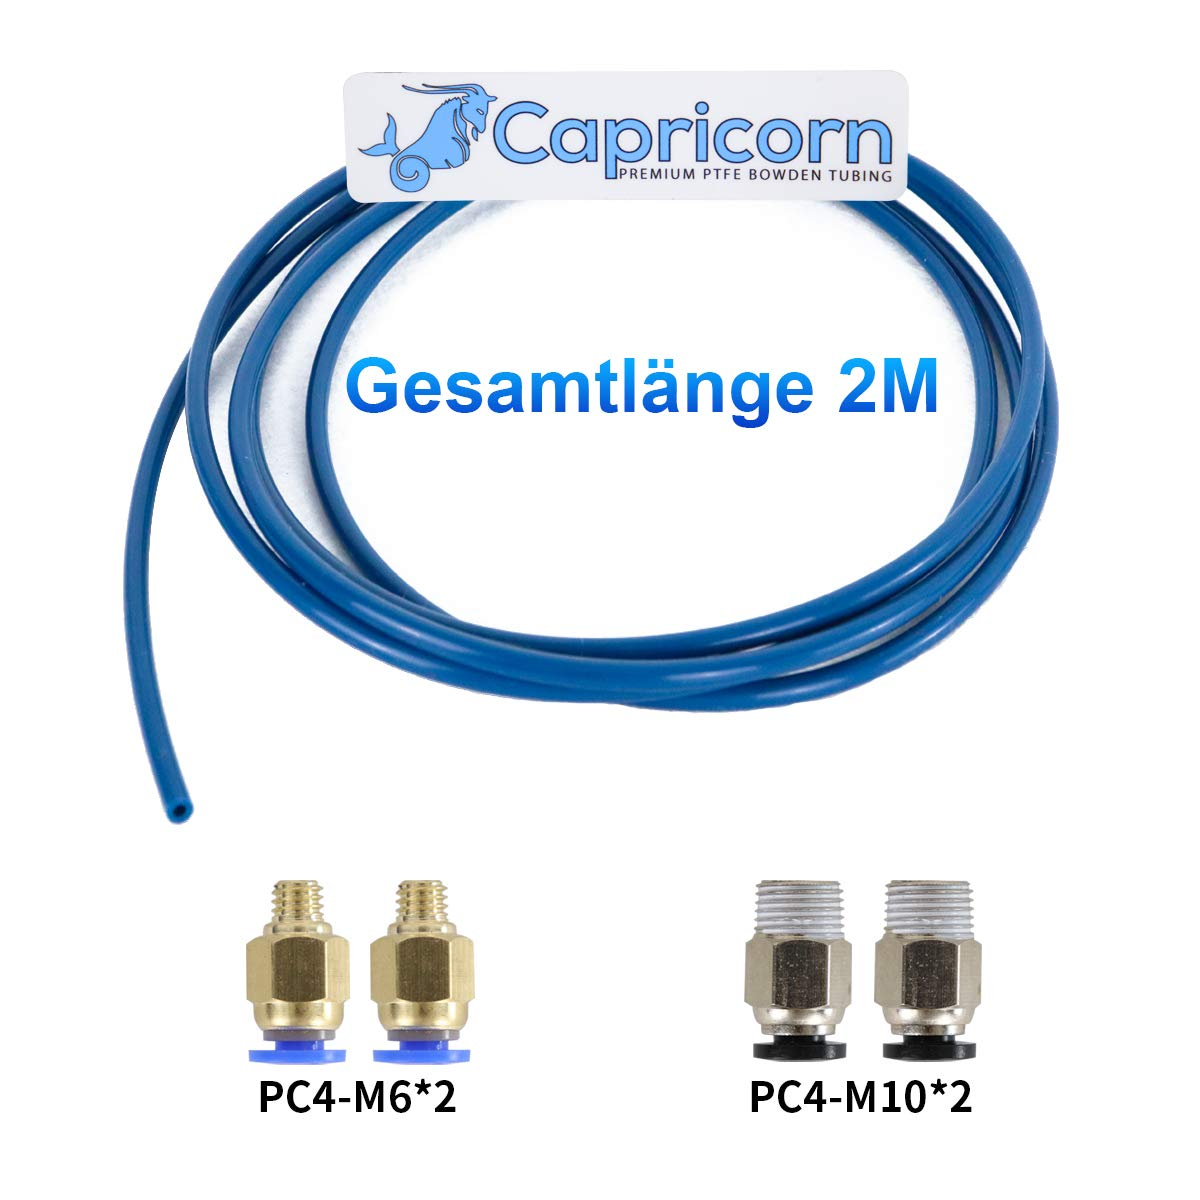 Authentic Capricorn PTFE 2 Metre Bowden Cable Hose XS Series for 1.75mm Filament with Improved Pneumatic Connections PC4-M6 and PC4-M10 2